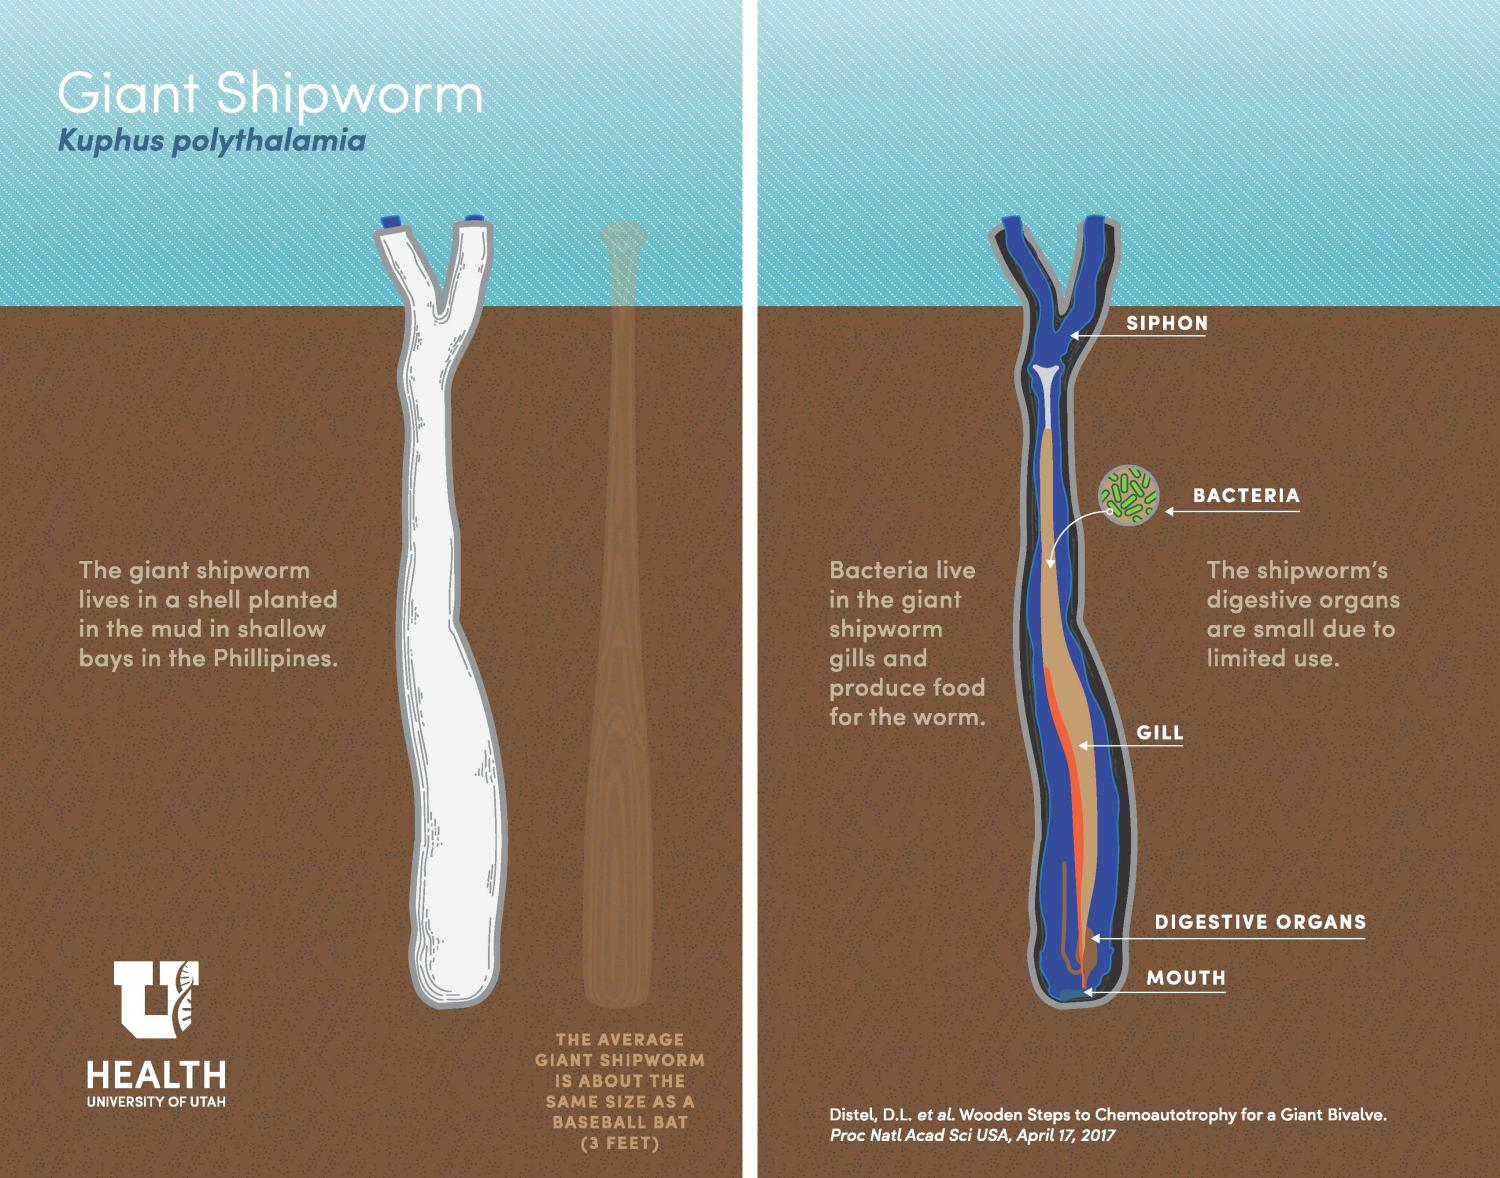 Science Fiction Horror Wriggles Into Reality With Discovery Of Giant Shipworm